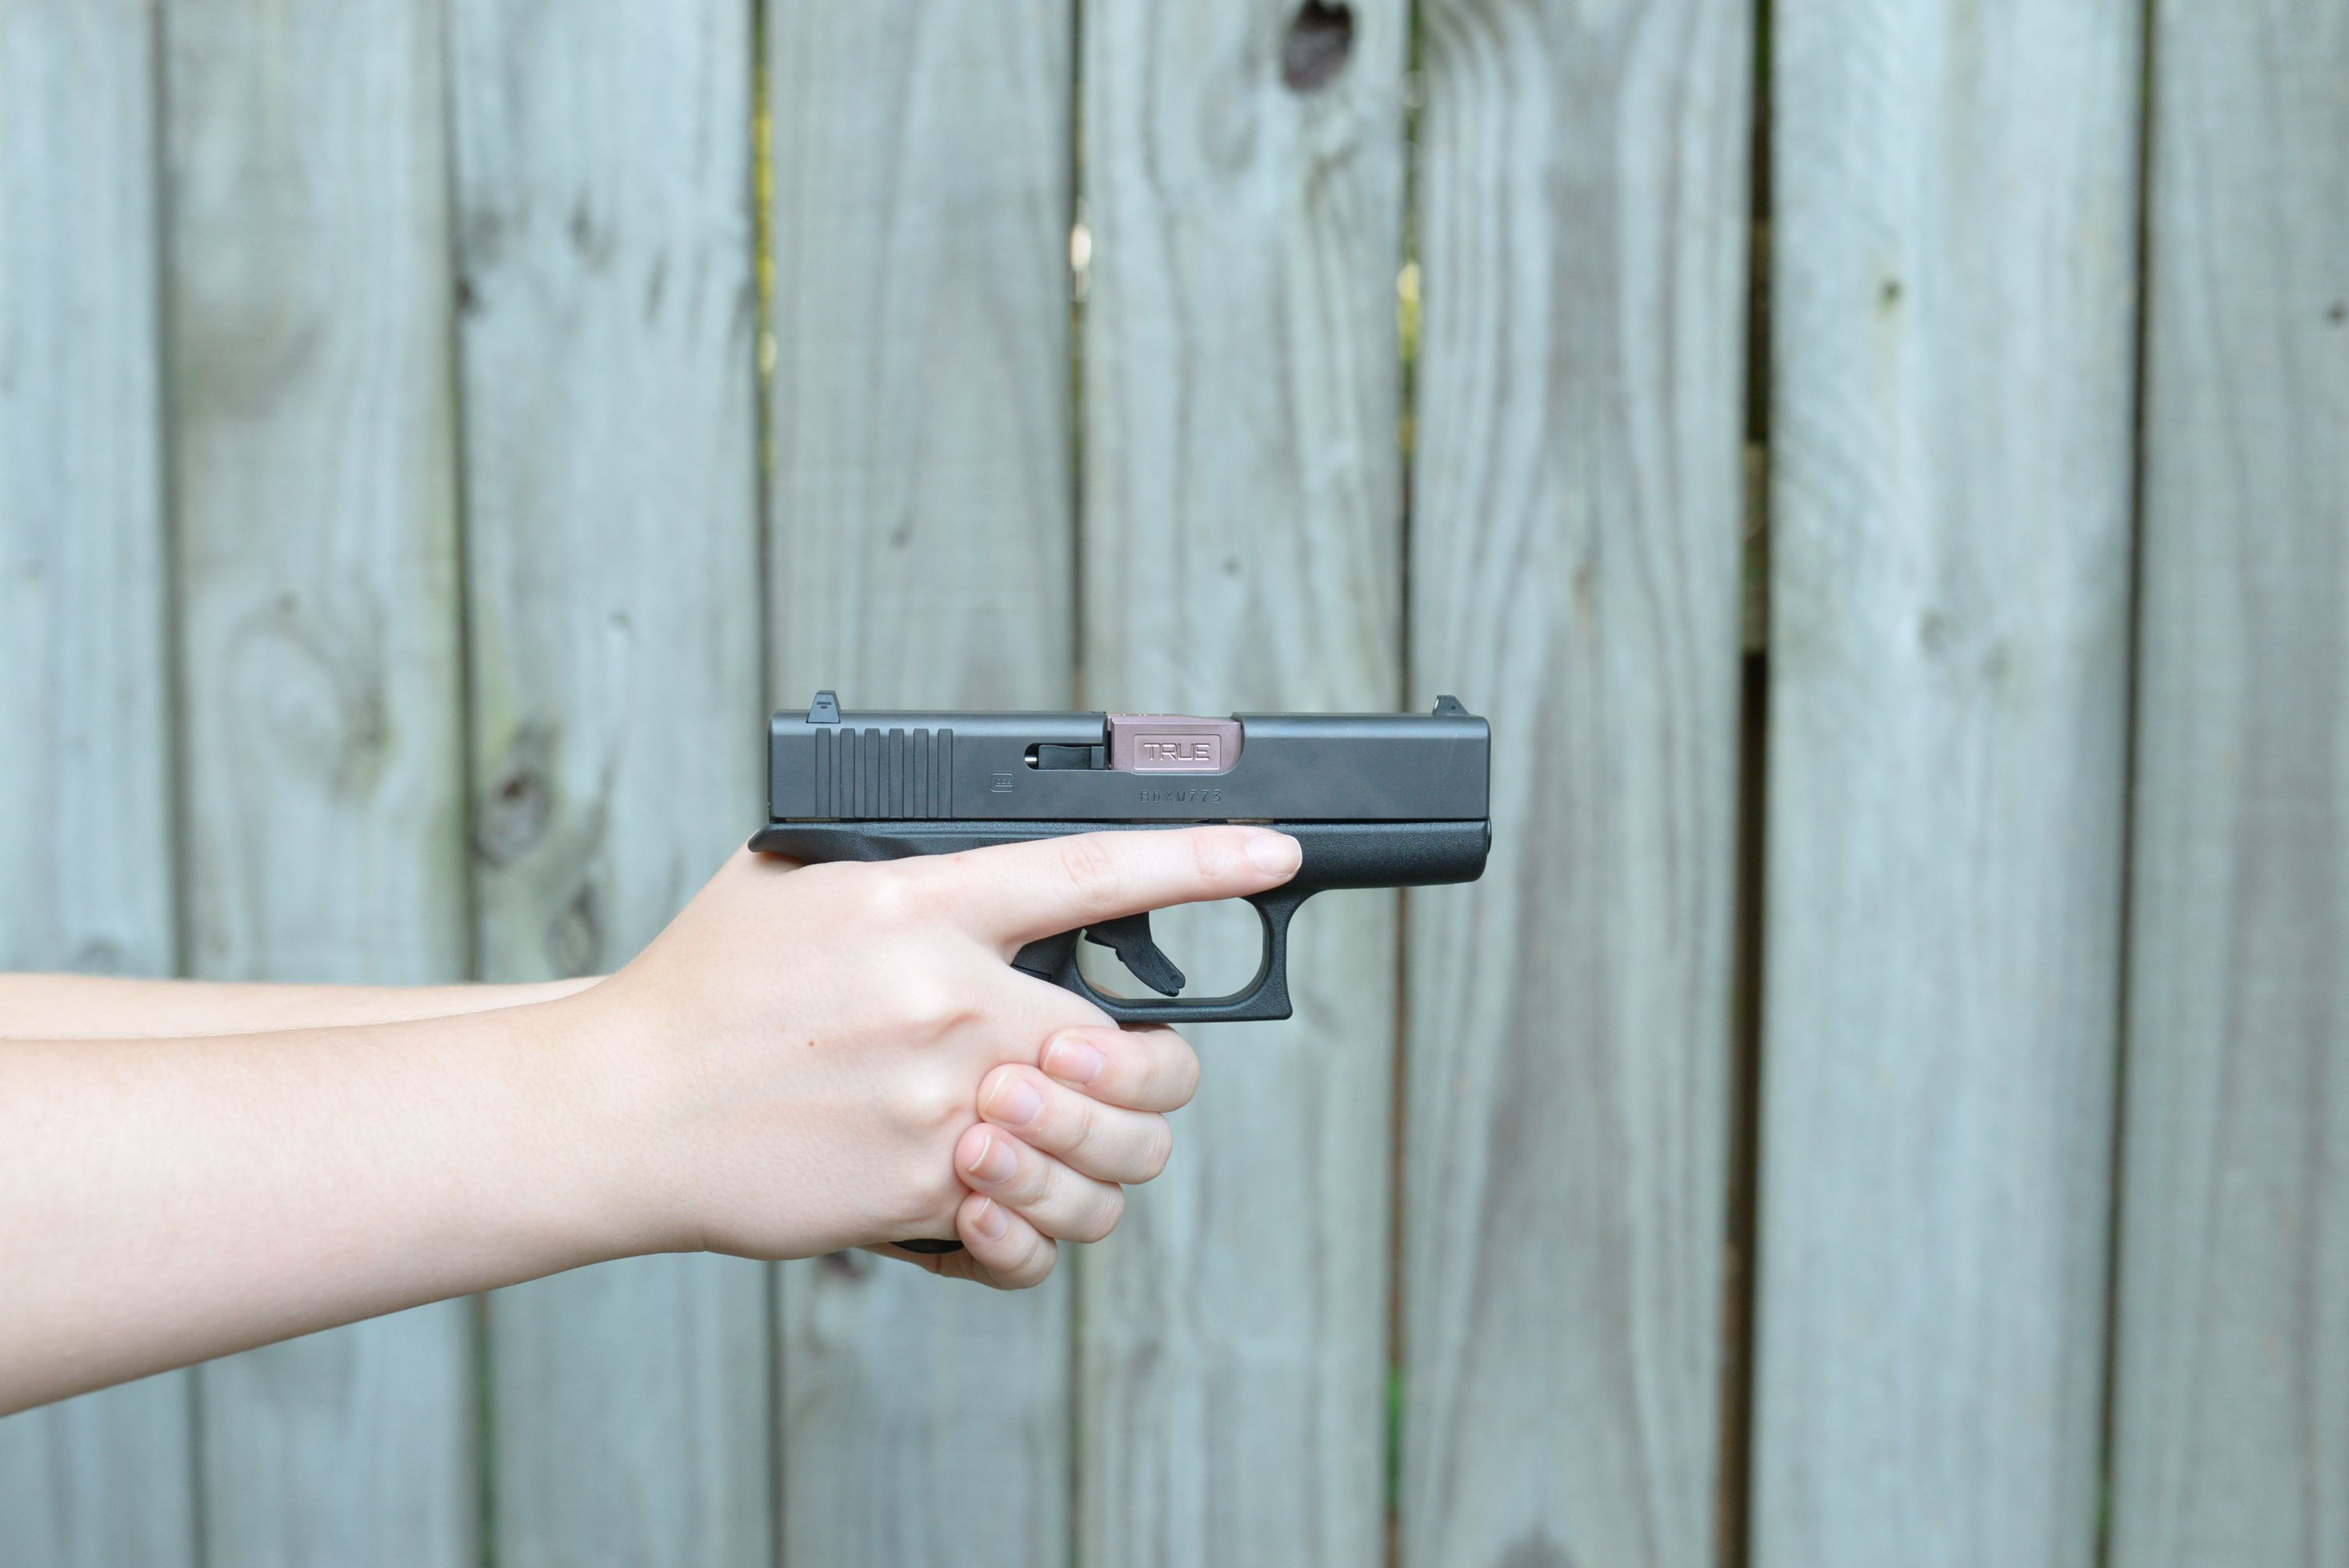 Rose TiCN on this Glock 43  Make your Glock shine with a